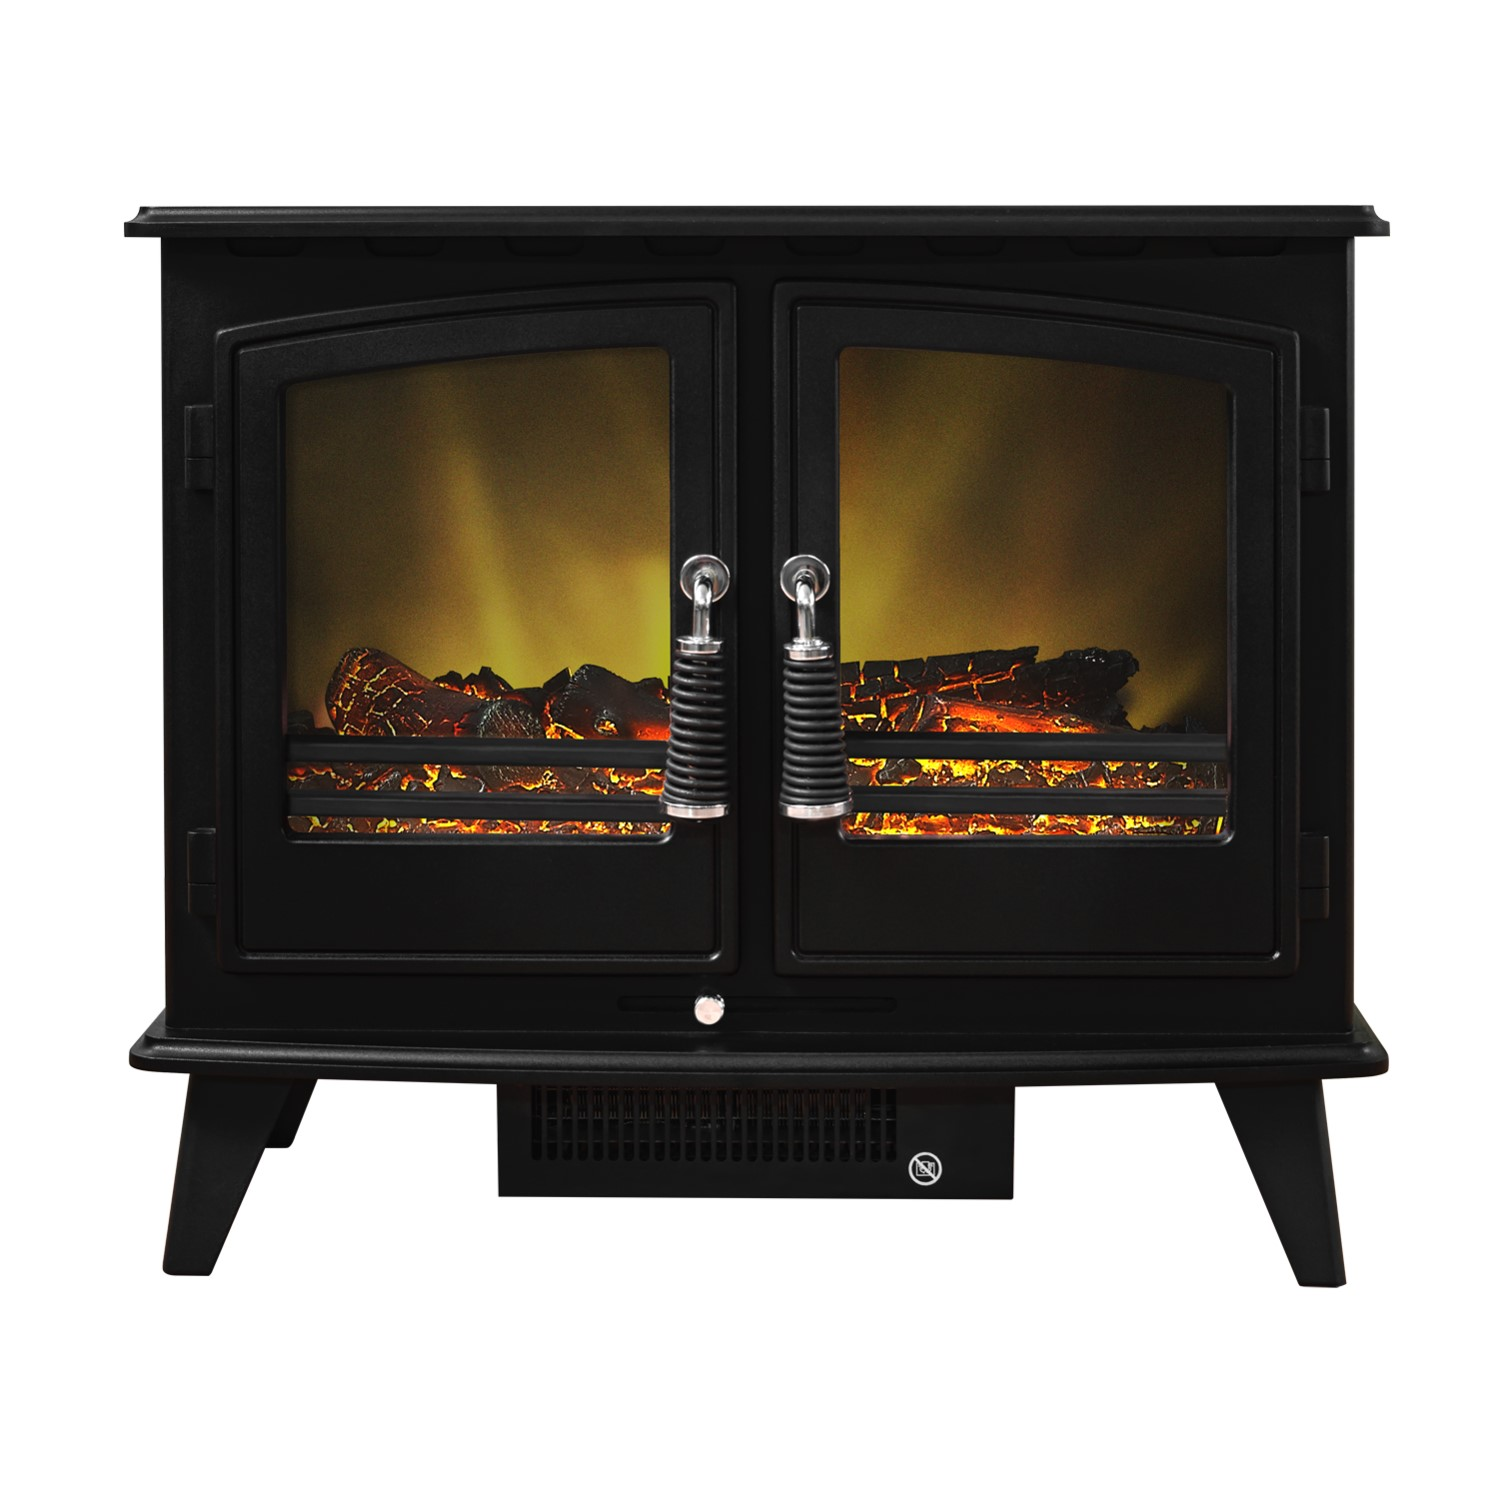 adam woodhouse black electric fireplace heater stove with double rh appliancesdirect co uk White Faux Fireplace Flame Electric Space Heaters